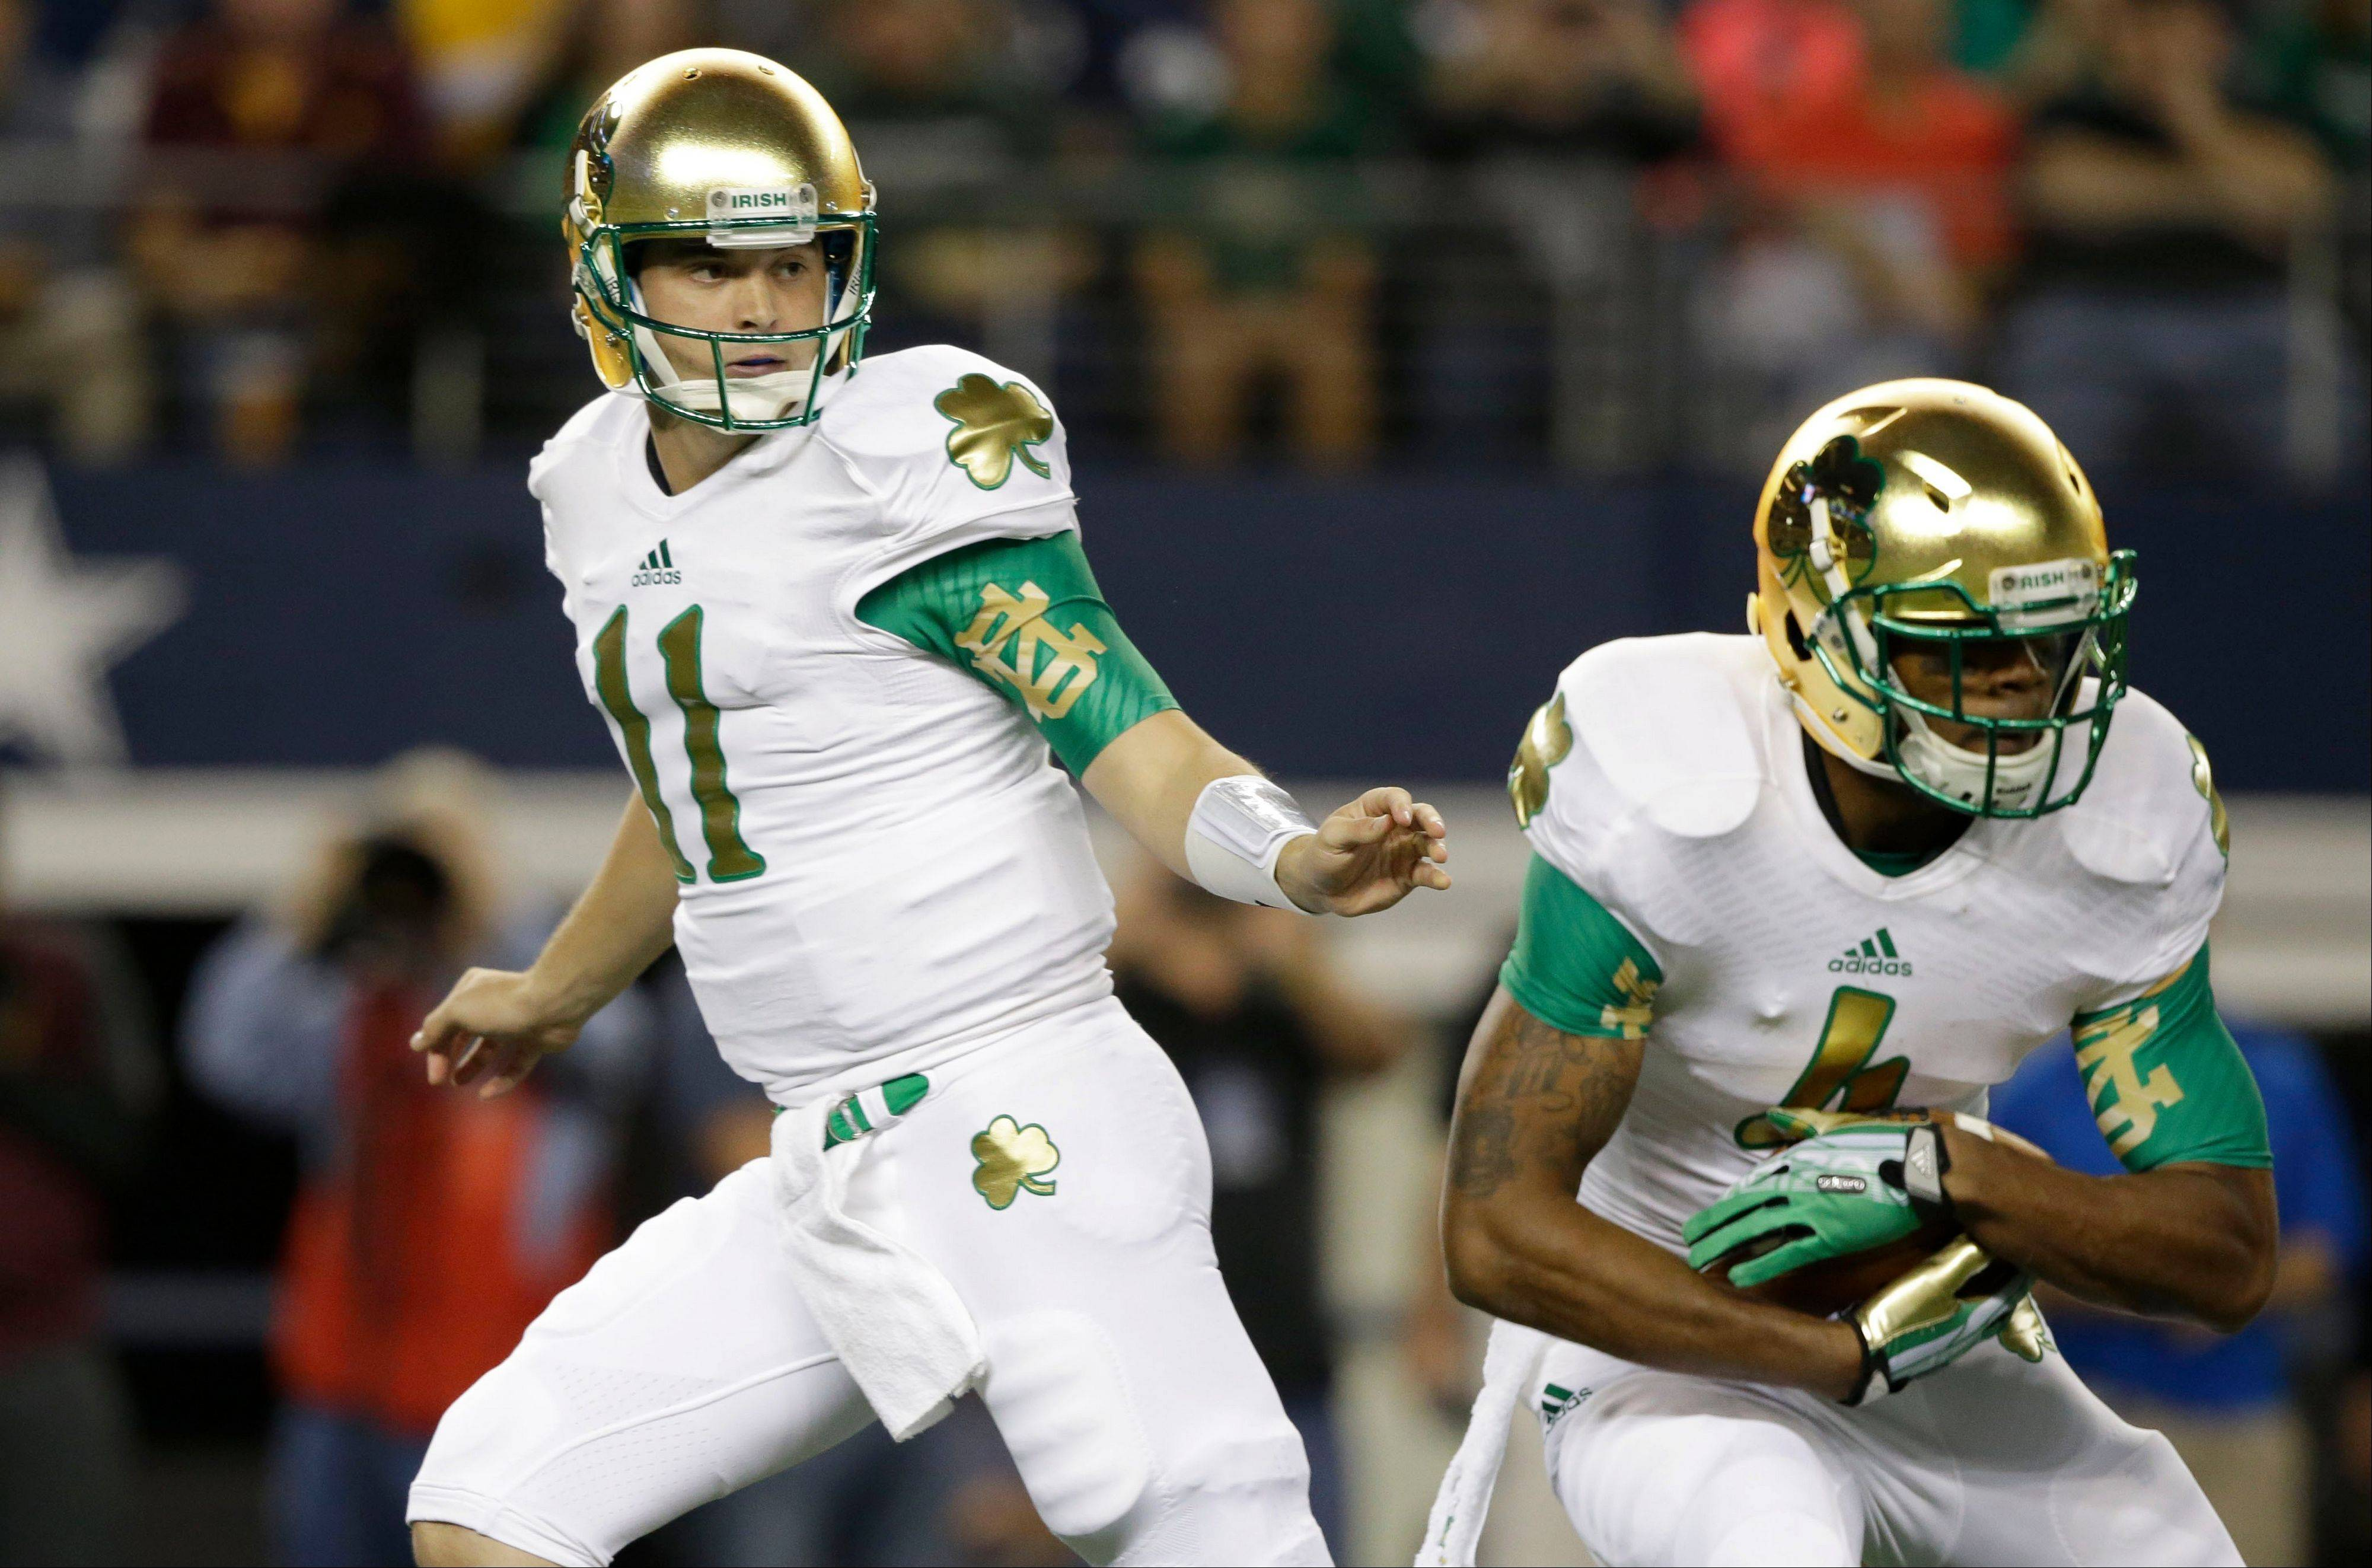 Notre Dame quarterback Tommy Rees (11) hands off to running back George Atkinson III during the first half of an NCAA college football game against Arizona State on Saturday, Oct. 5, 2013, in Arlington, Texas. (AP Photo/LM Otero)